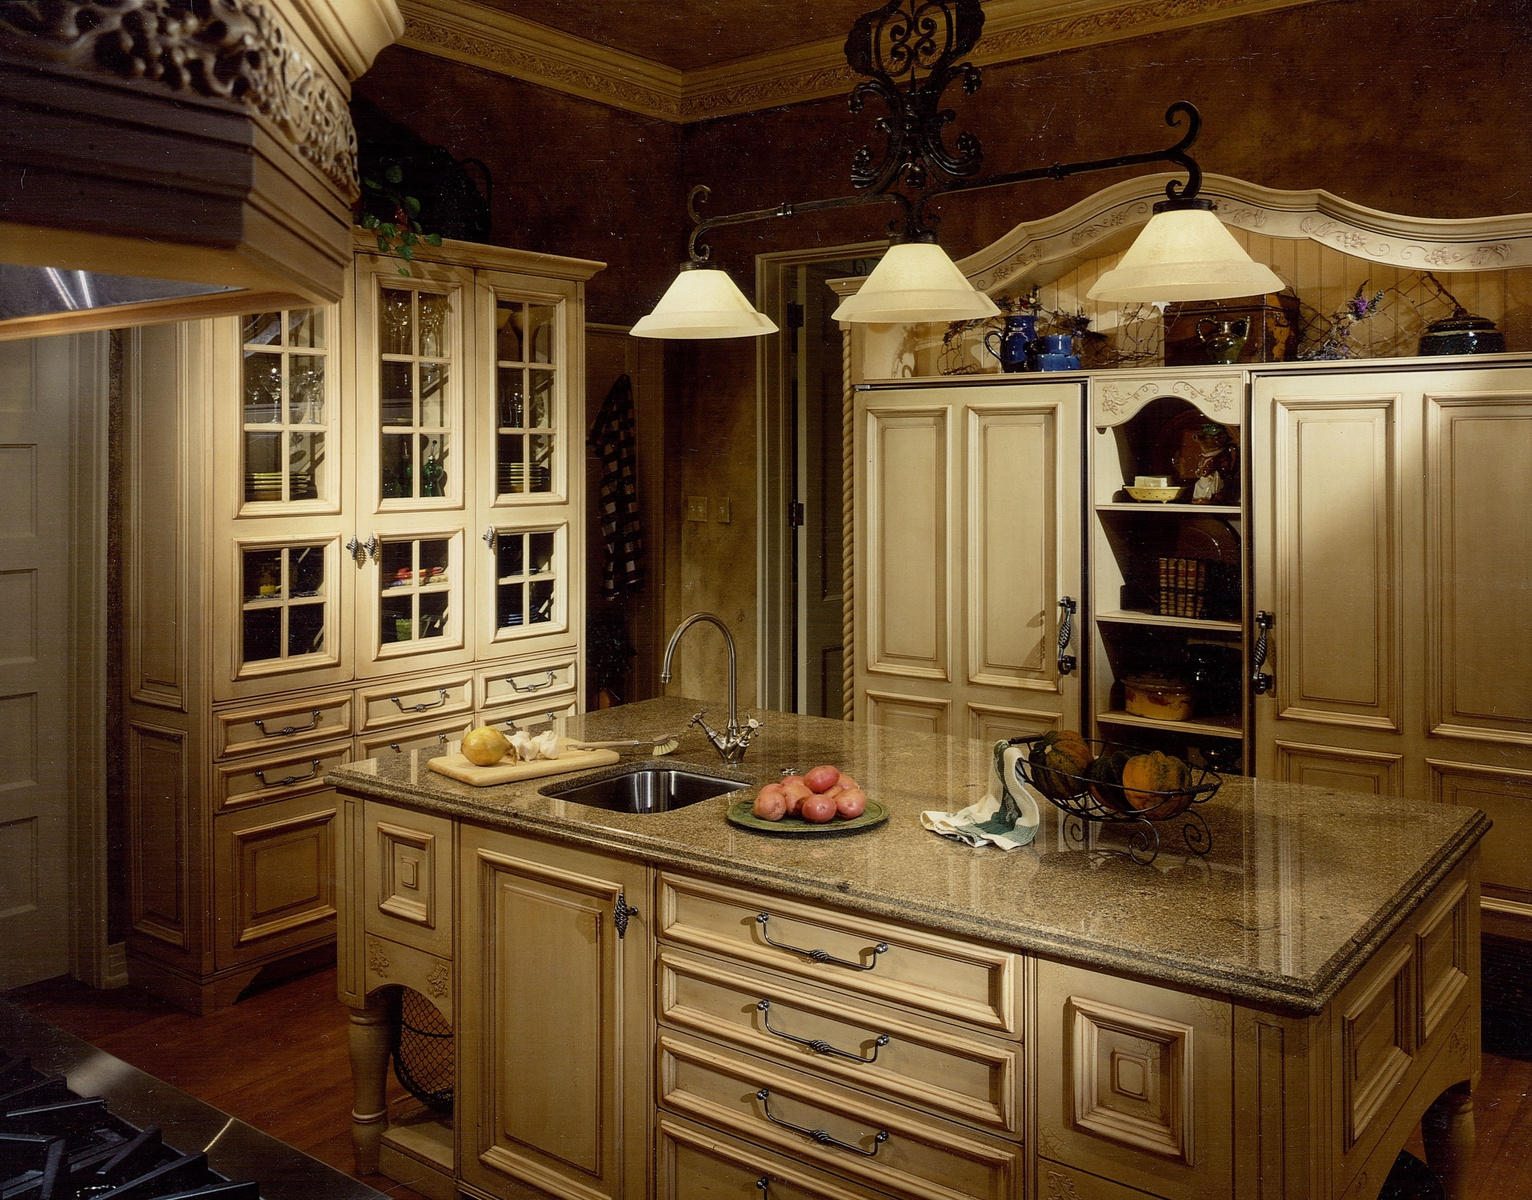 interesting french country kitchen wall decor   20 Things to consider before making French country kitchen ...